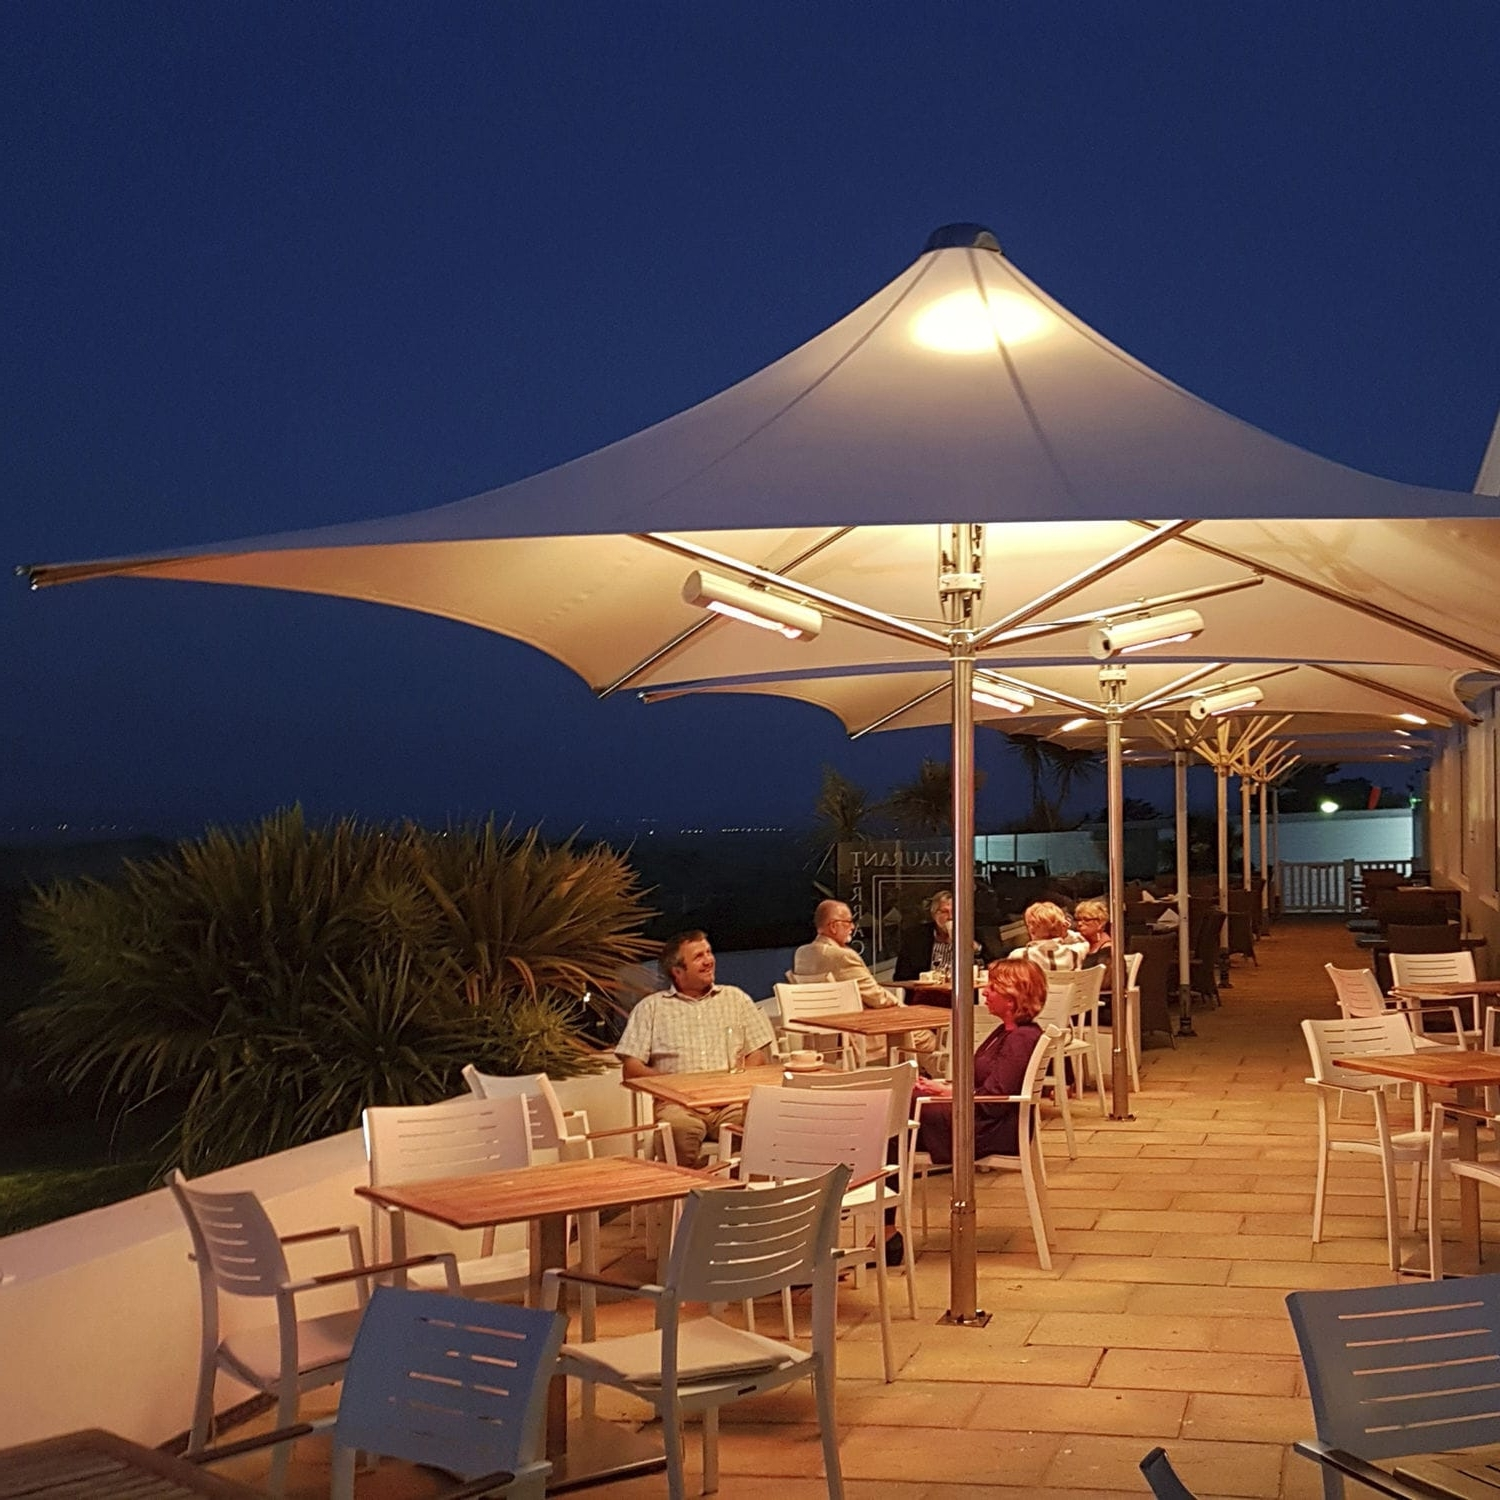 Commercial Patio Umbrella / Stainless Steel / Pvc / Wind Resistant Inside Current Wind Resistant Patio Umbrellas (View 7 of 20)